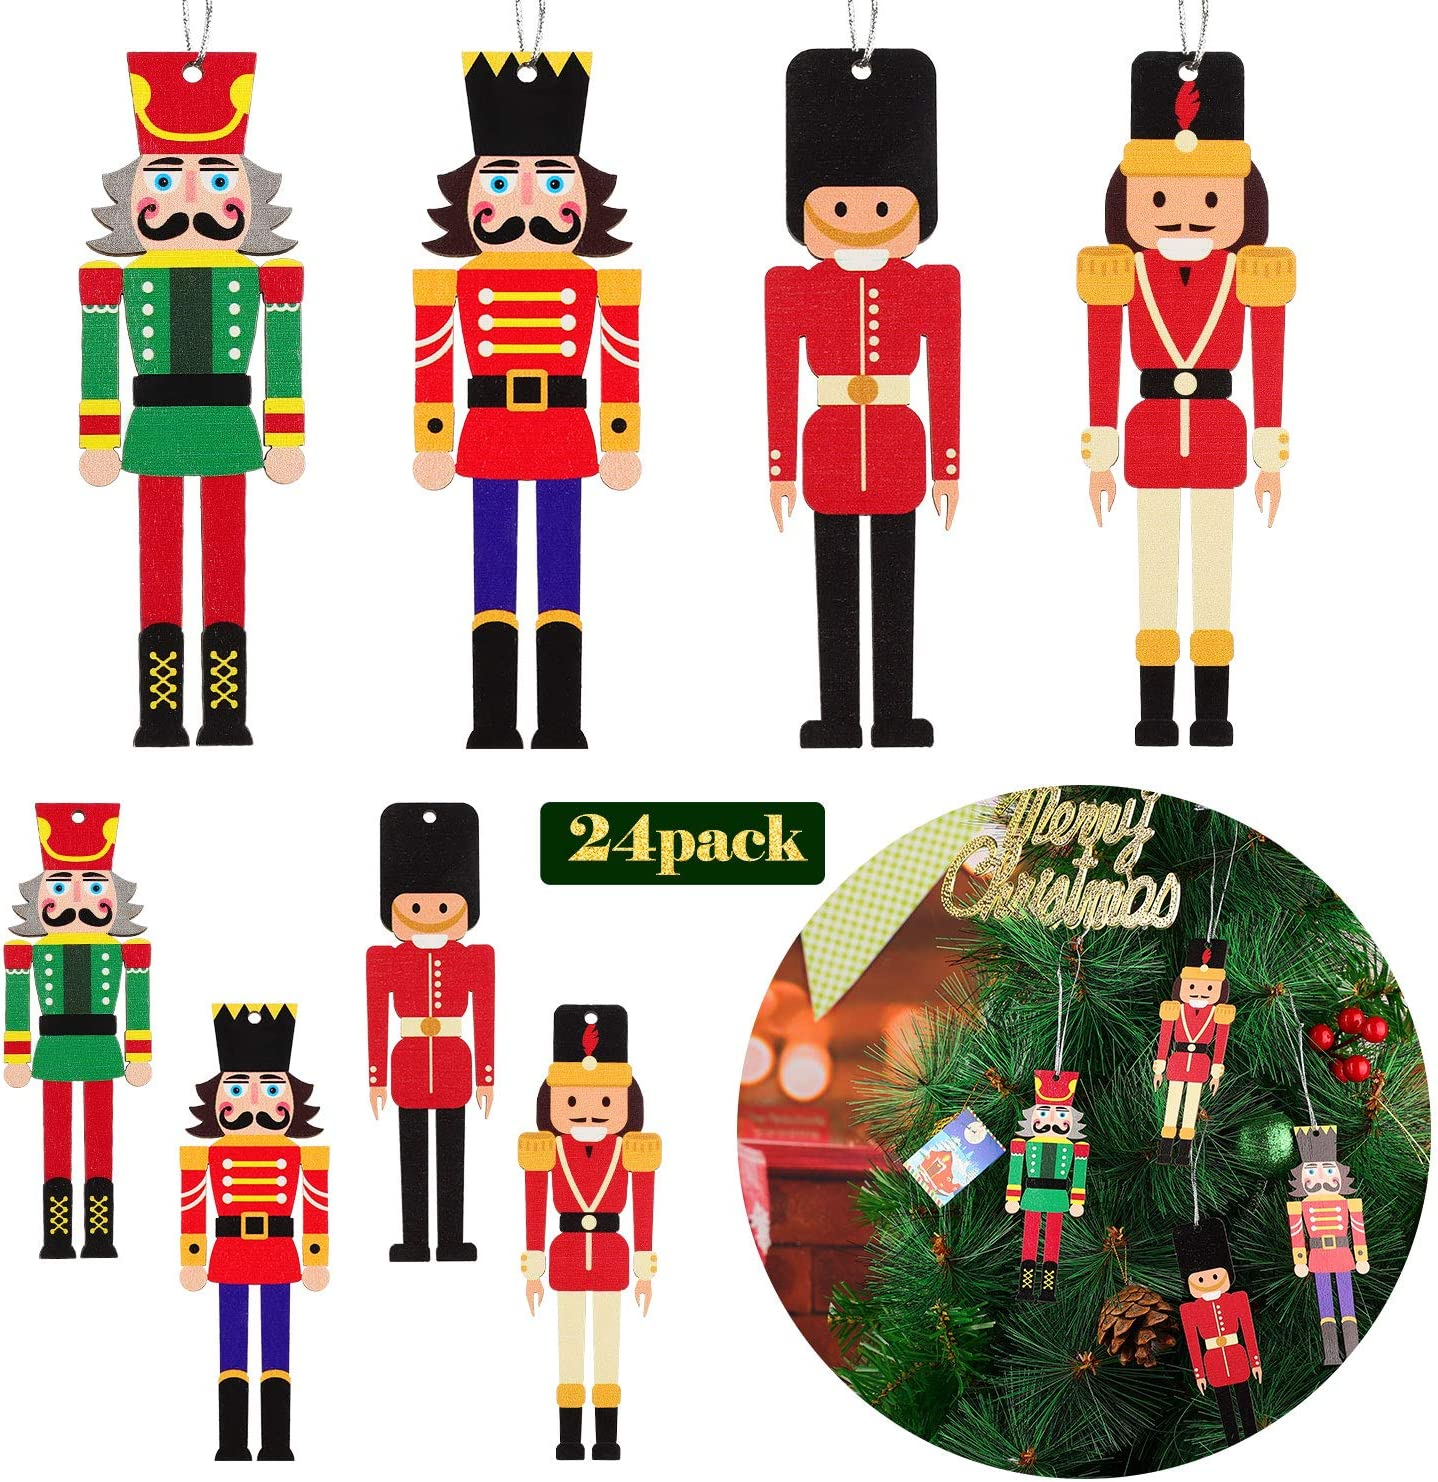 Jetec 20 Pieces Christmas Nutcracker Ornament Set Wooden Nutcracker Christmas Nutcrackers Hanging Ornament Figures Wooden King and Soldier Nutcracker for Christmas Party Supplies